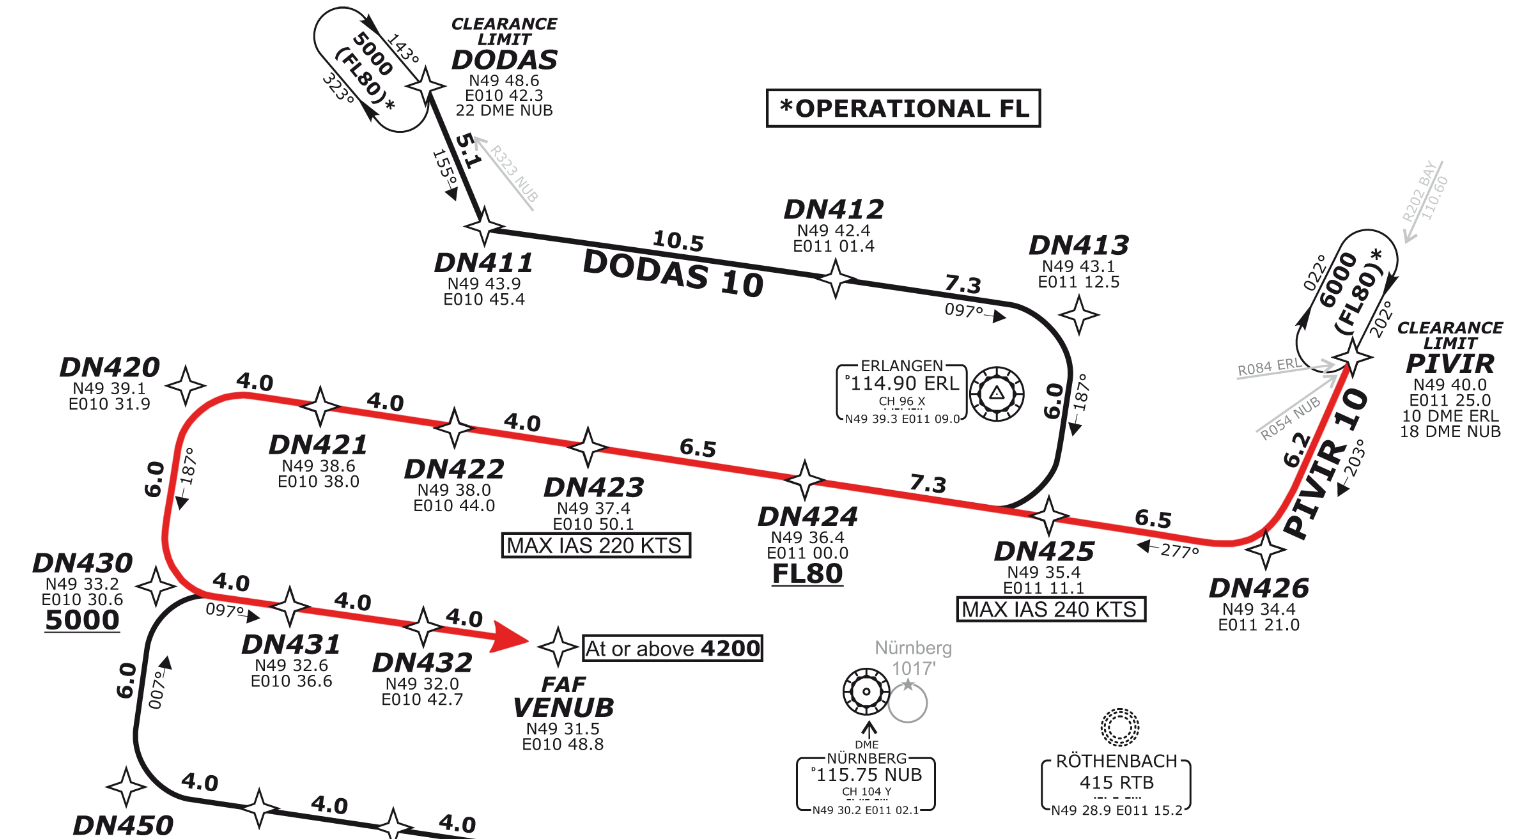 EDDN RNAV Transition RWY 10